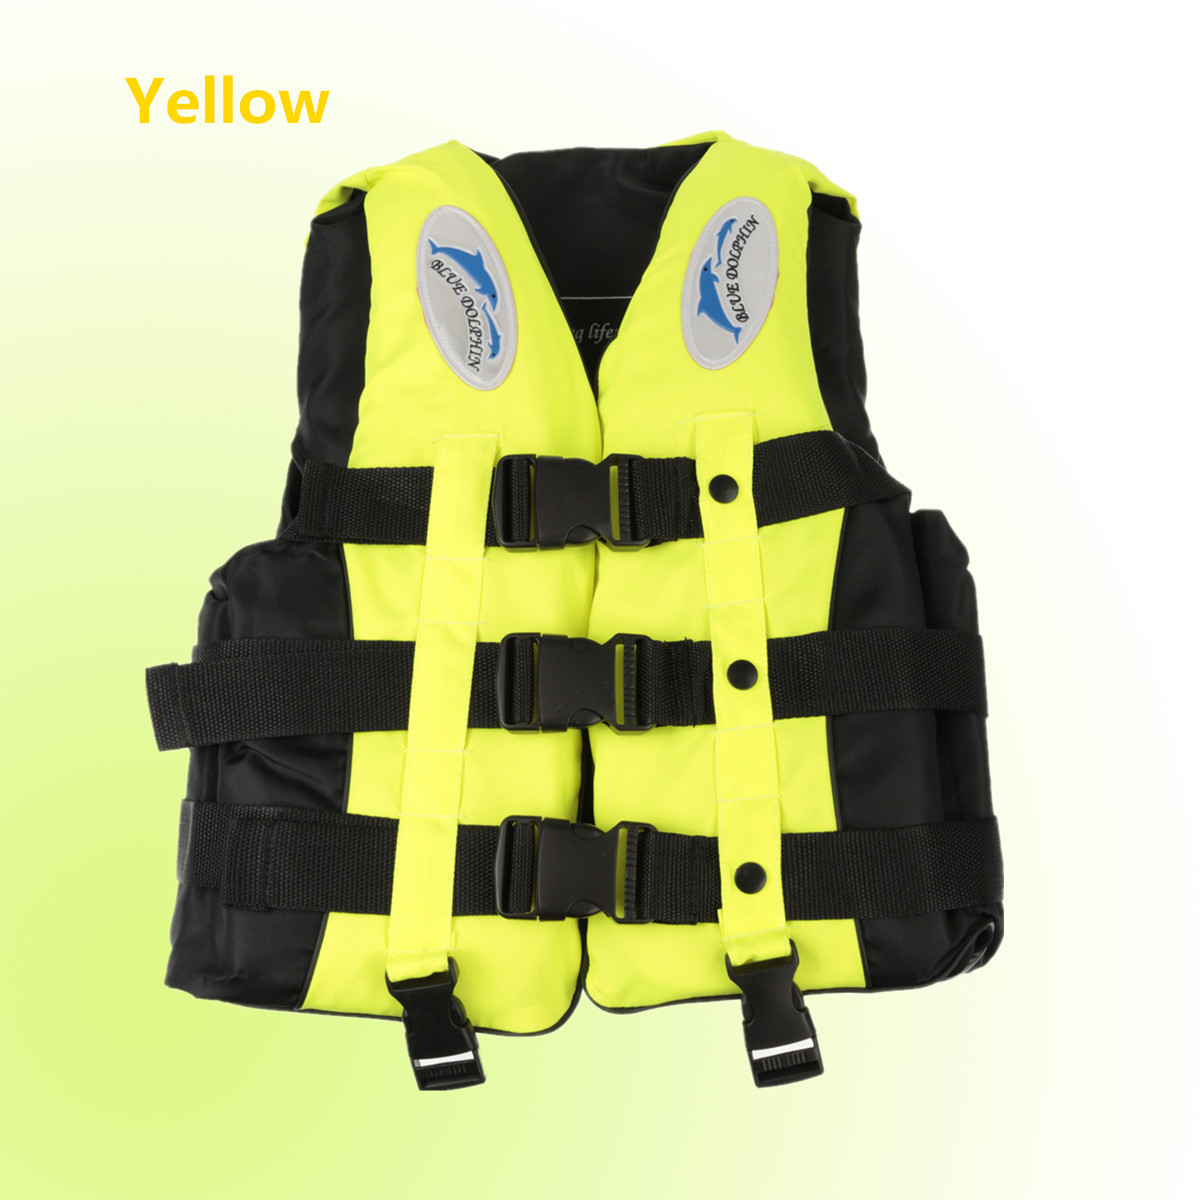 S Size Life Jacket Life Buoy Gilet For Adult Kids Boat Jacket Water Sports Gear Clothing